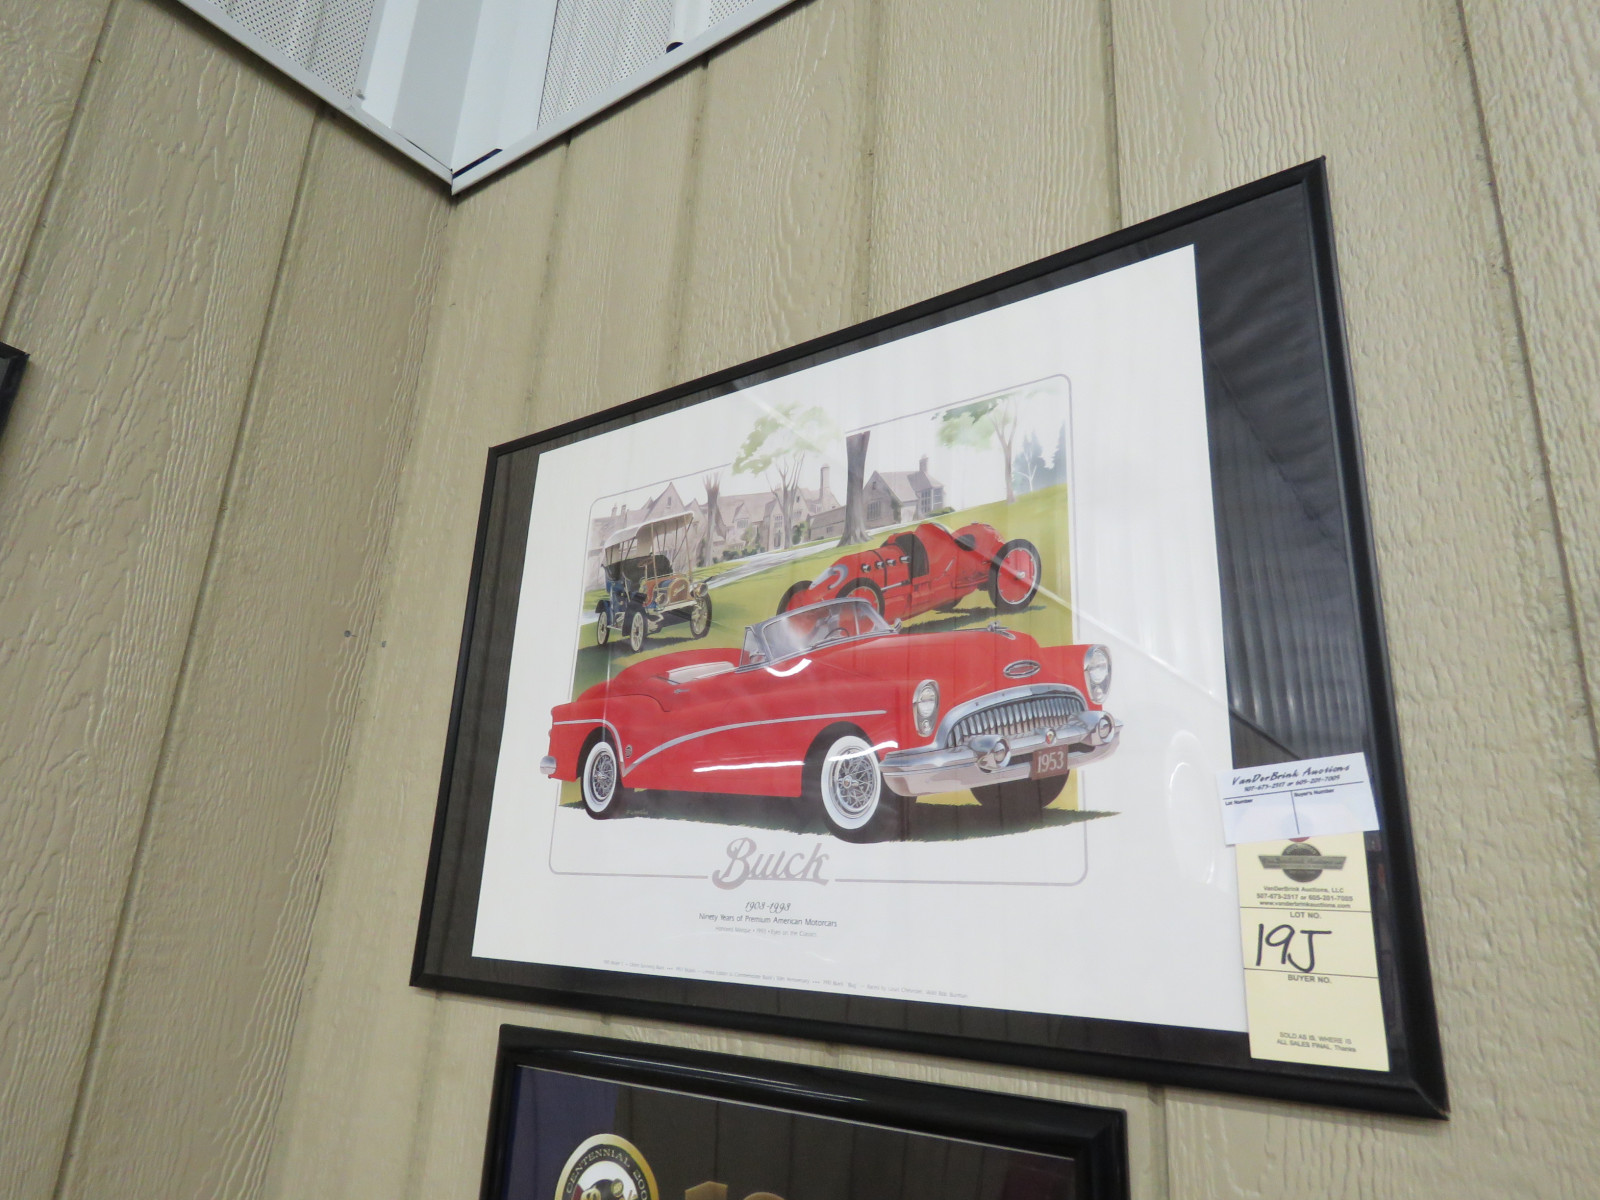 Buick Limited Edition Framed Print - Image 1